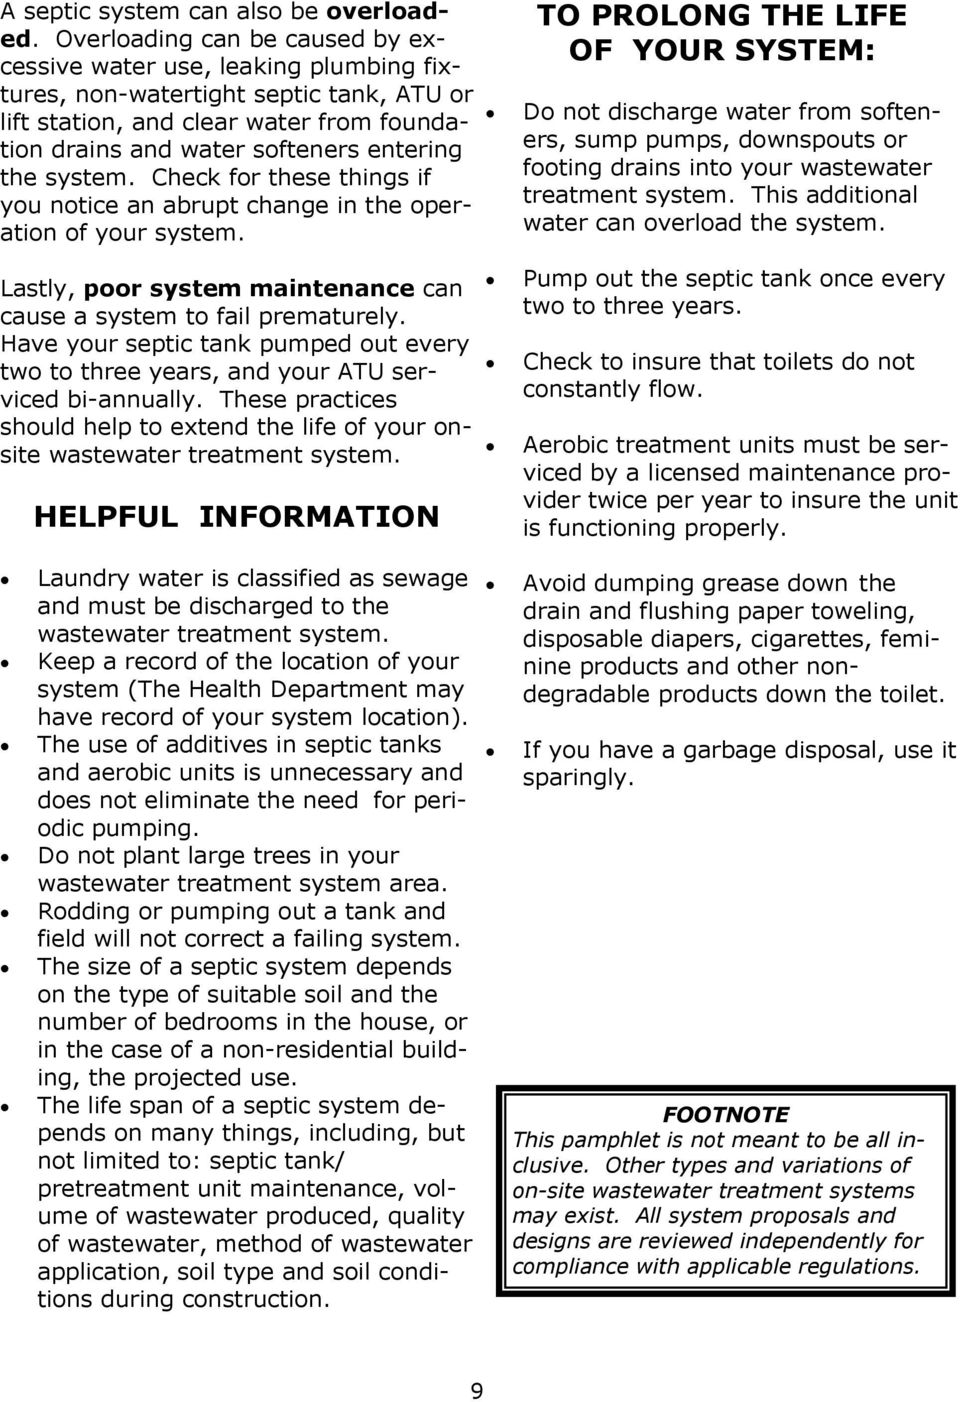 system. Check for these things if you notice an abrupt change in the operation of your system.